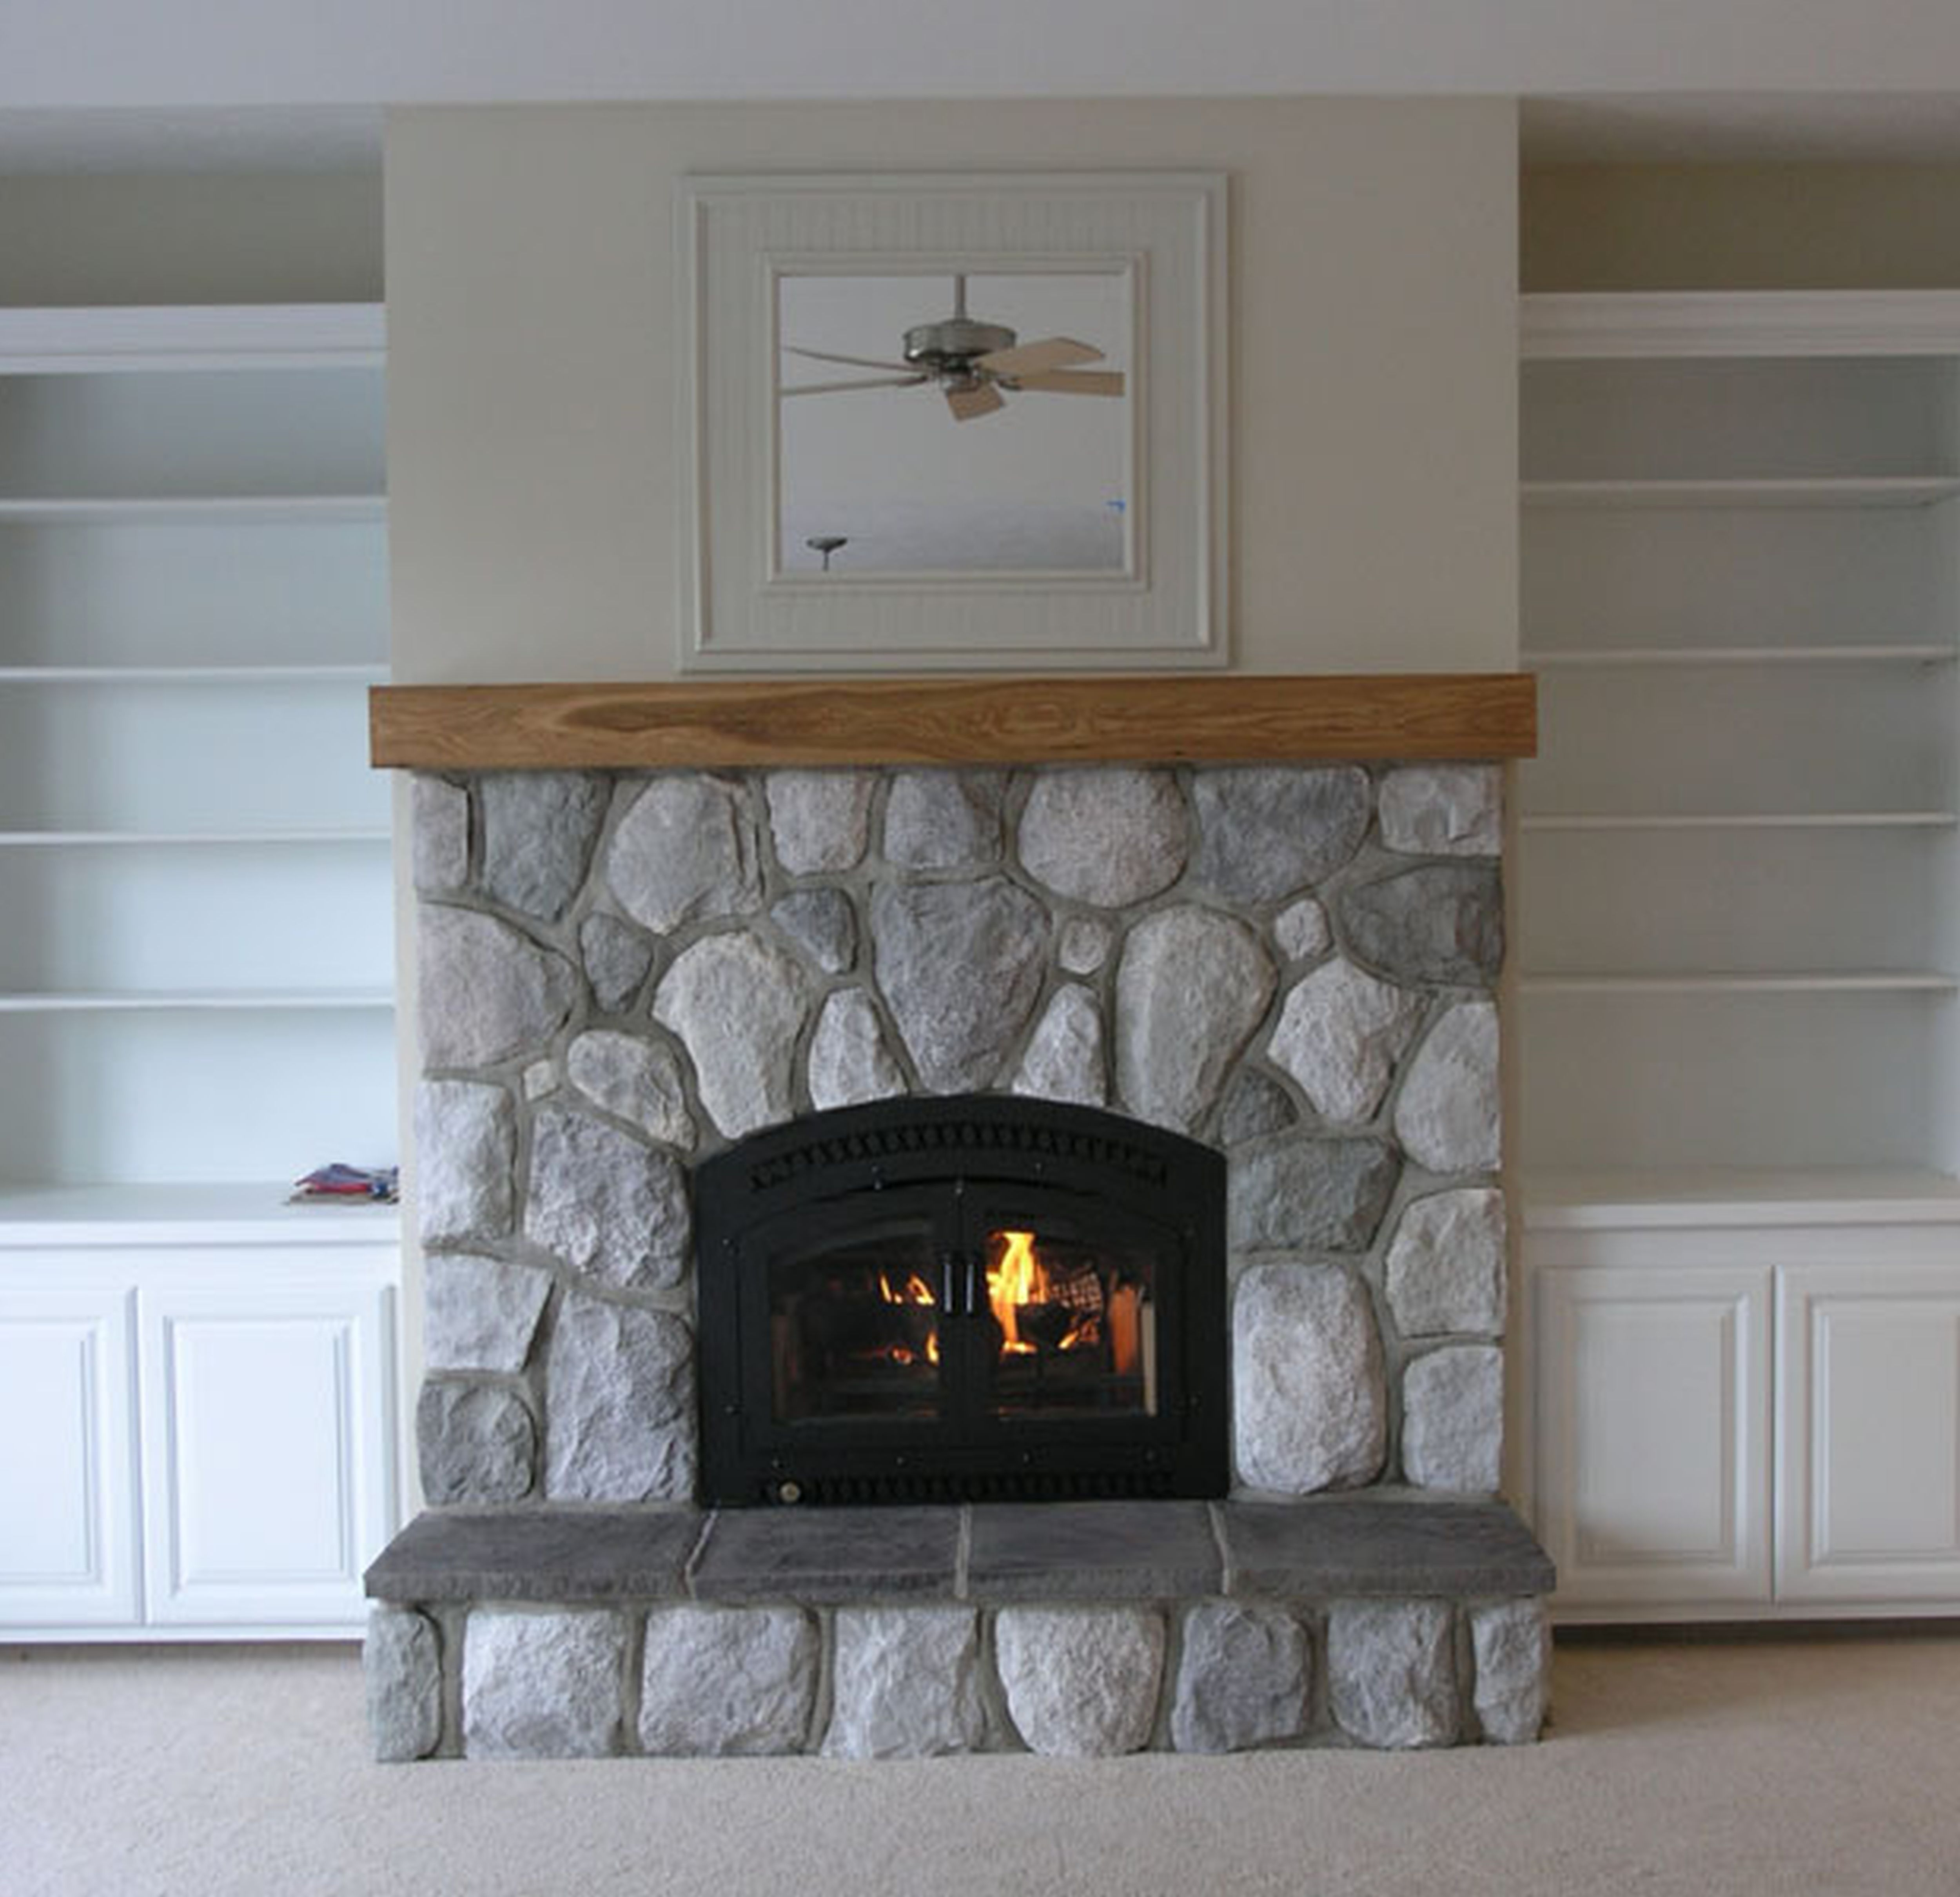 Interior Stacked River Rock Fireplace With Double Black Metal Fire Stone Fireplace Surround Painted Stone Fireplace Grey Stone Fireplace